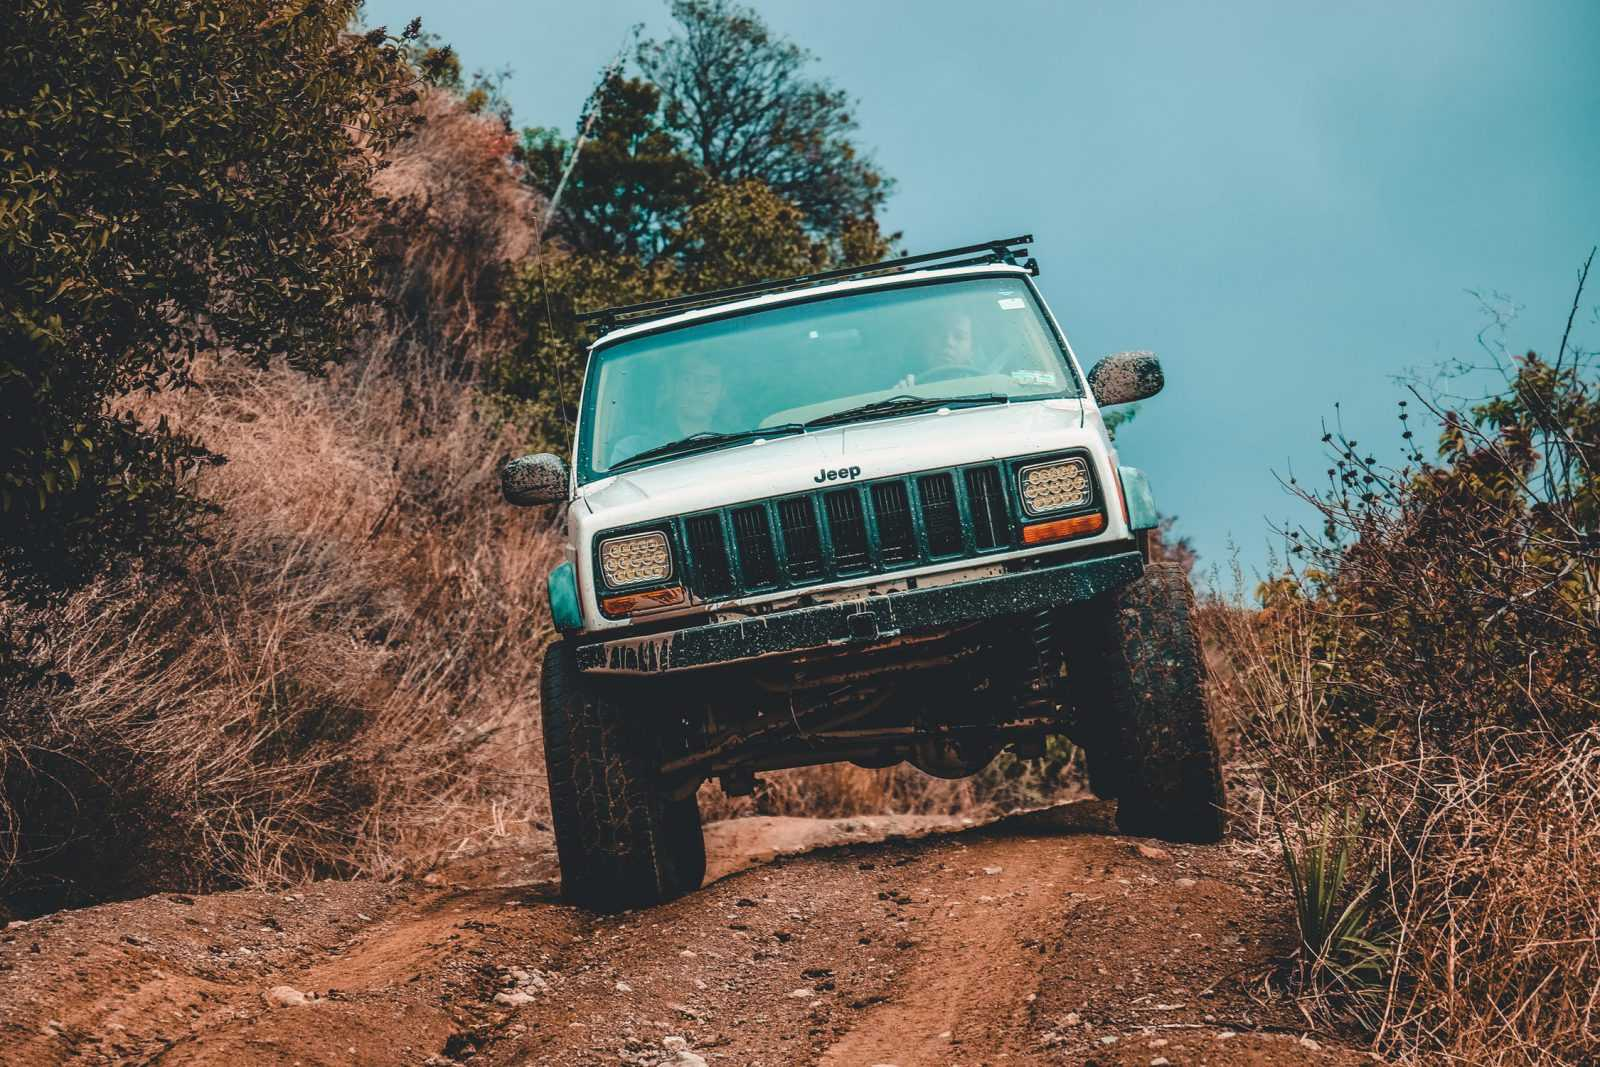 4WD too has its limitations